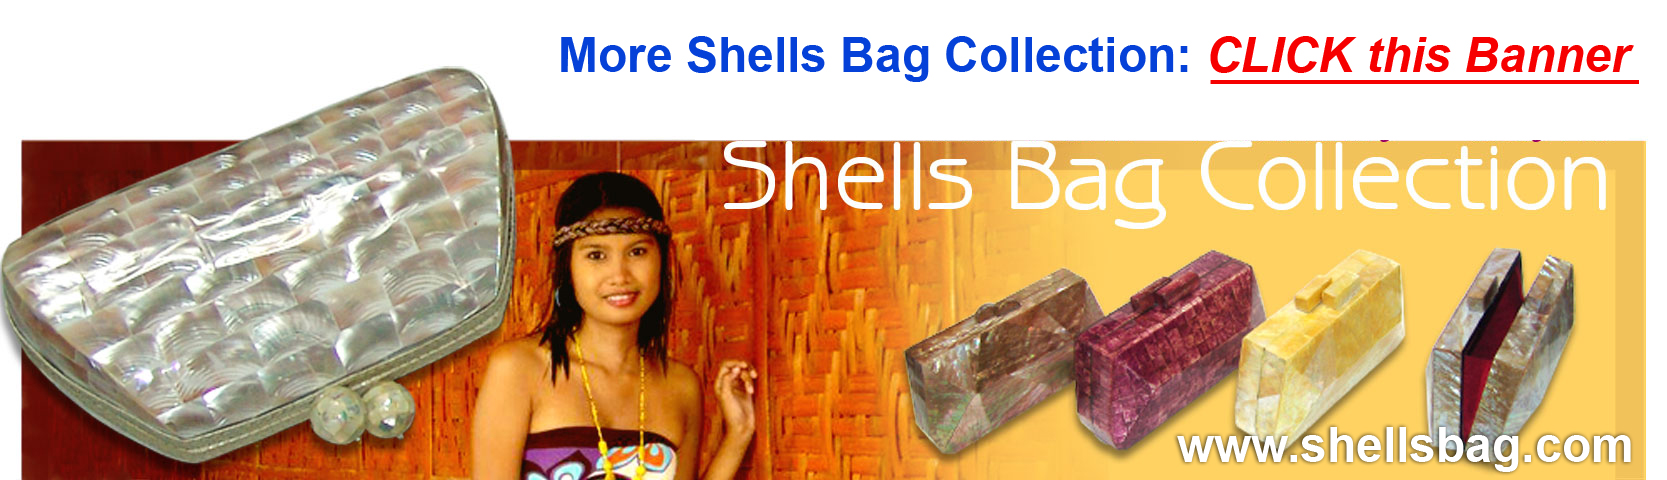 Fashion Shells Bag